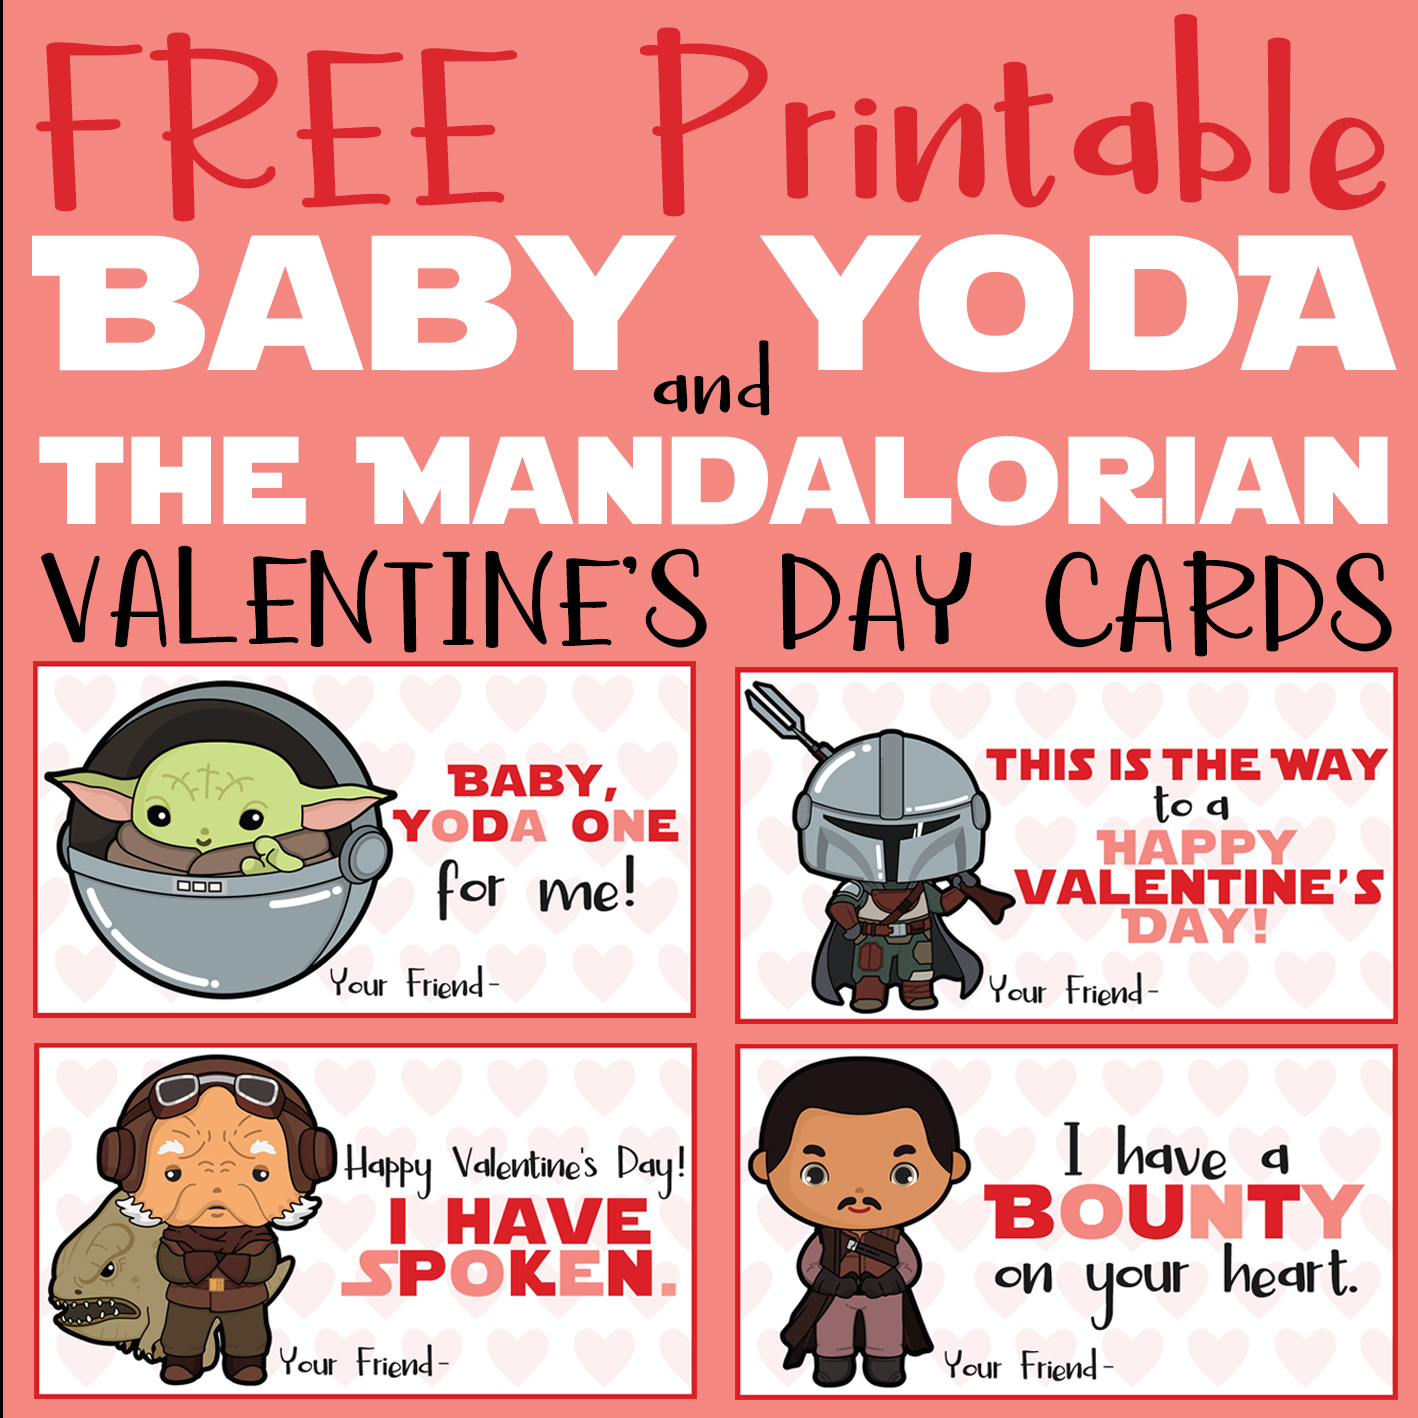 FREE Printable Baby Yoda & The Mandalorian Valentine's Day Cards